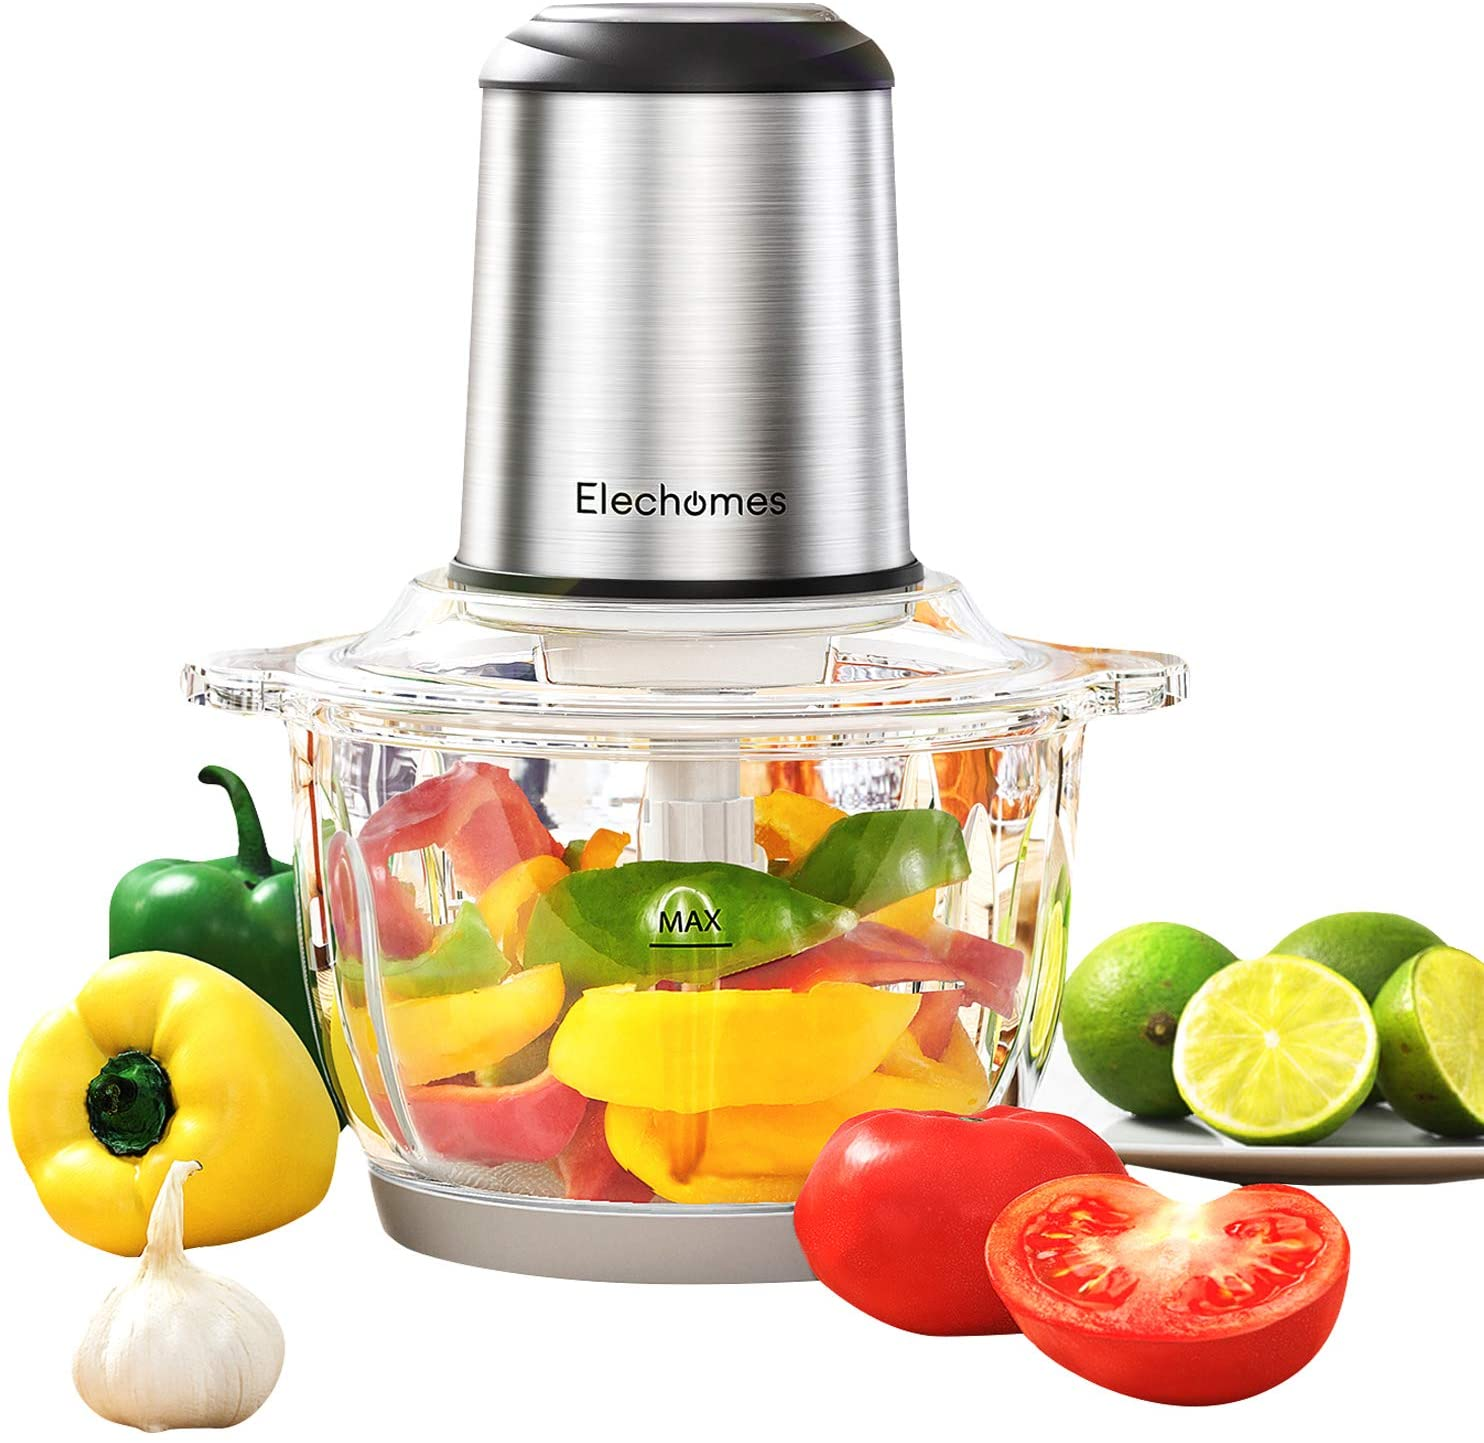 Elechomes Electric Food Processor